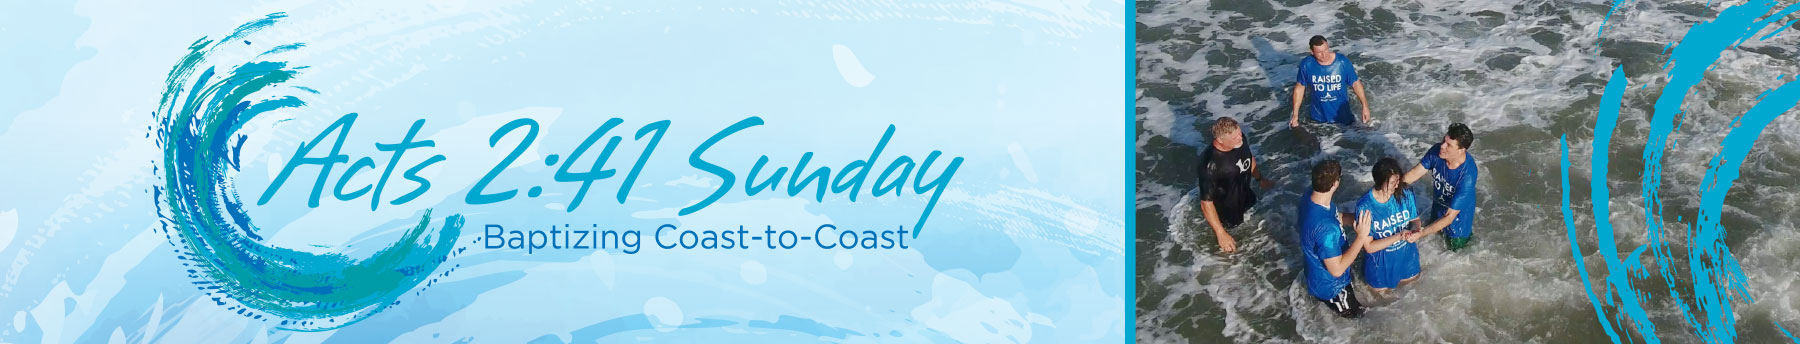 Acts 2:41 Sunday Florida Baptist Convention, Florida Baptist Convention, Acts 2:41 Sunday, Beach Baptism